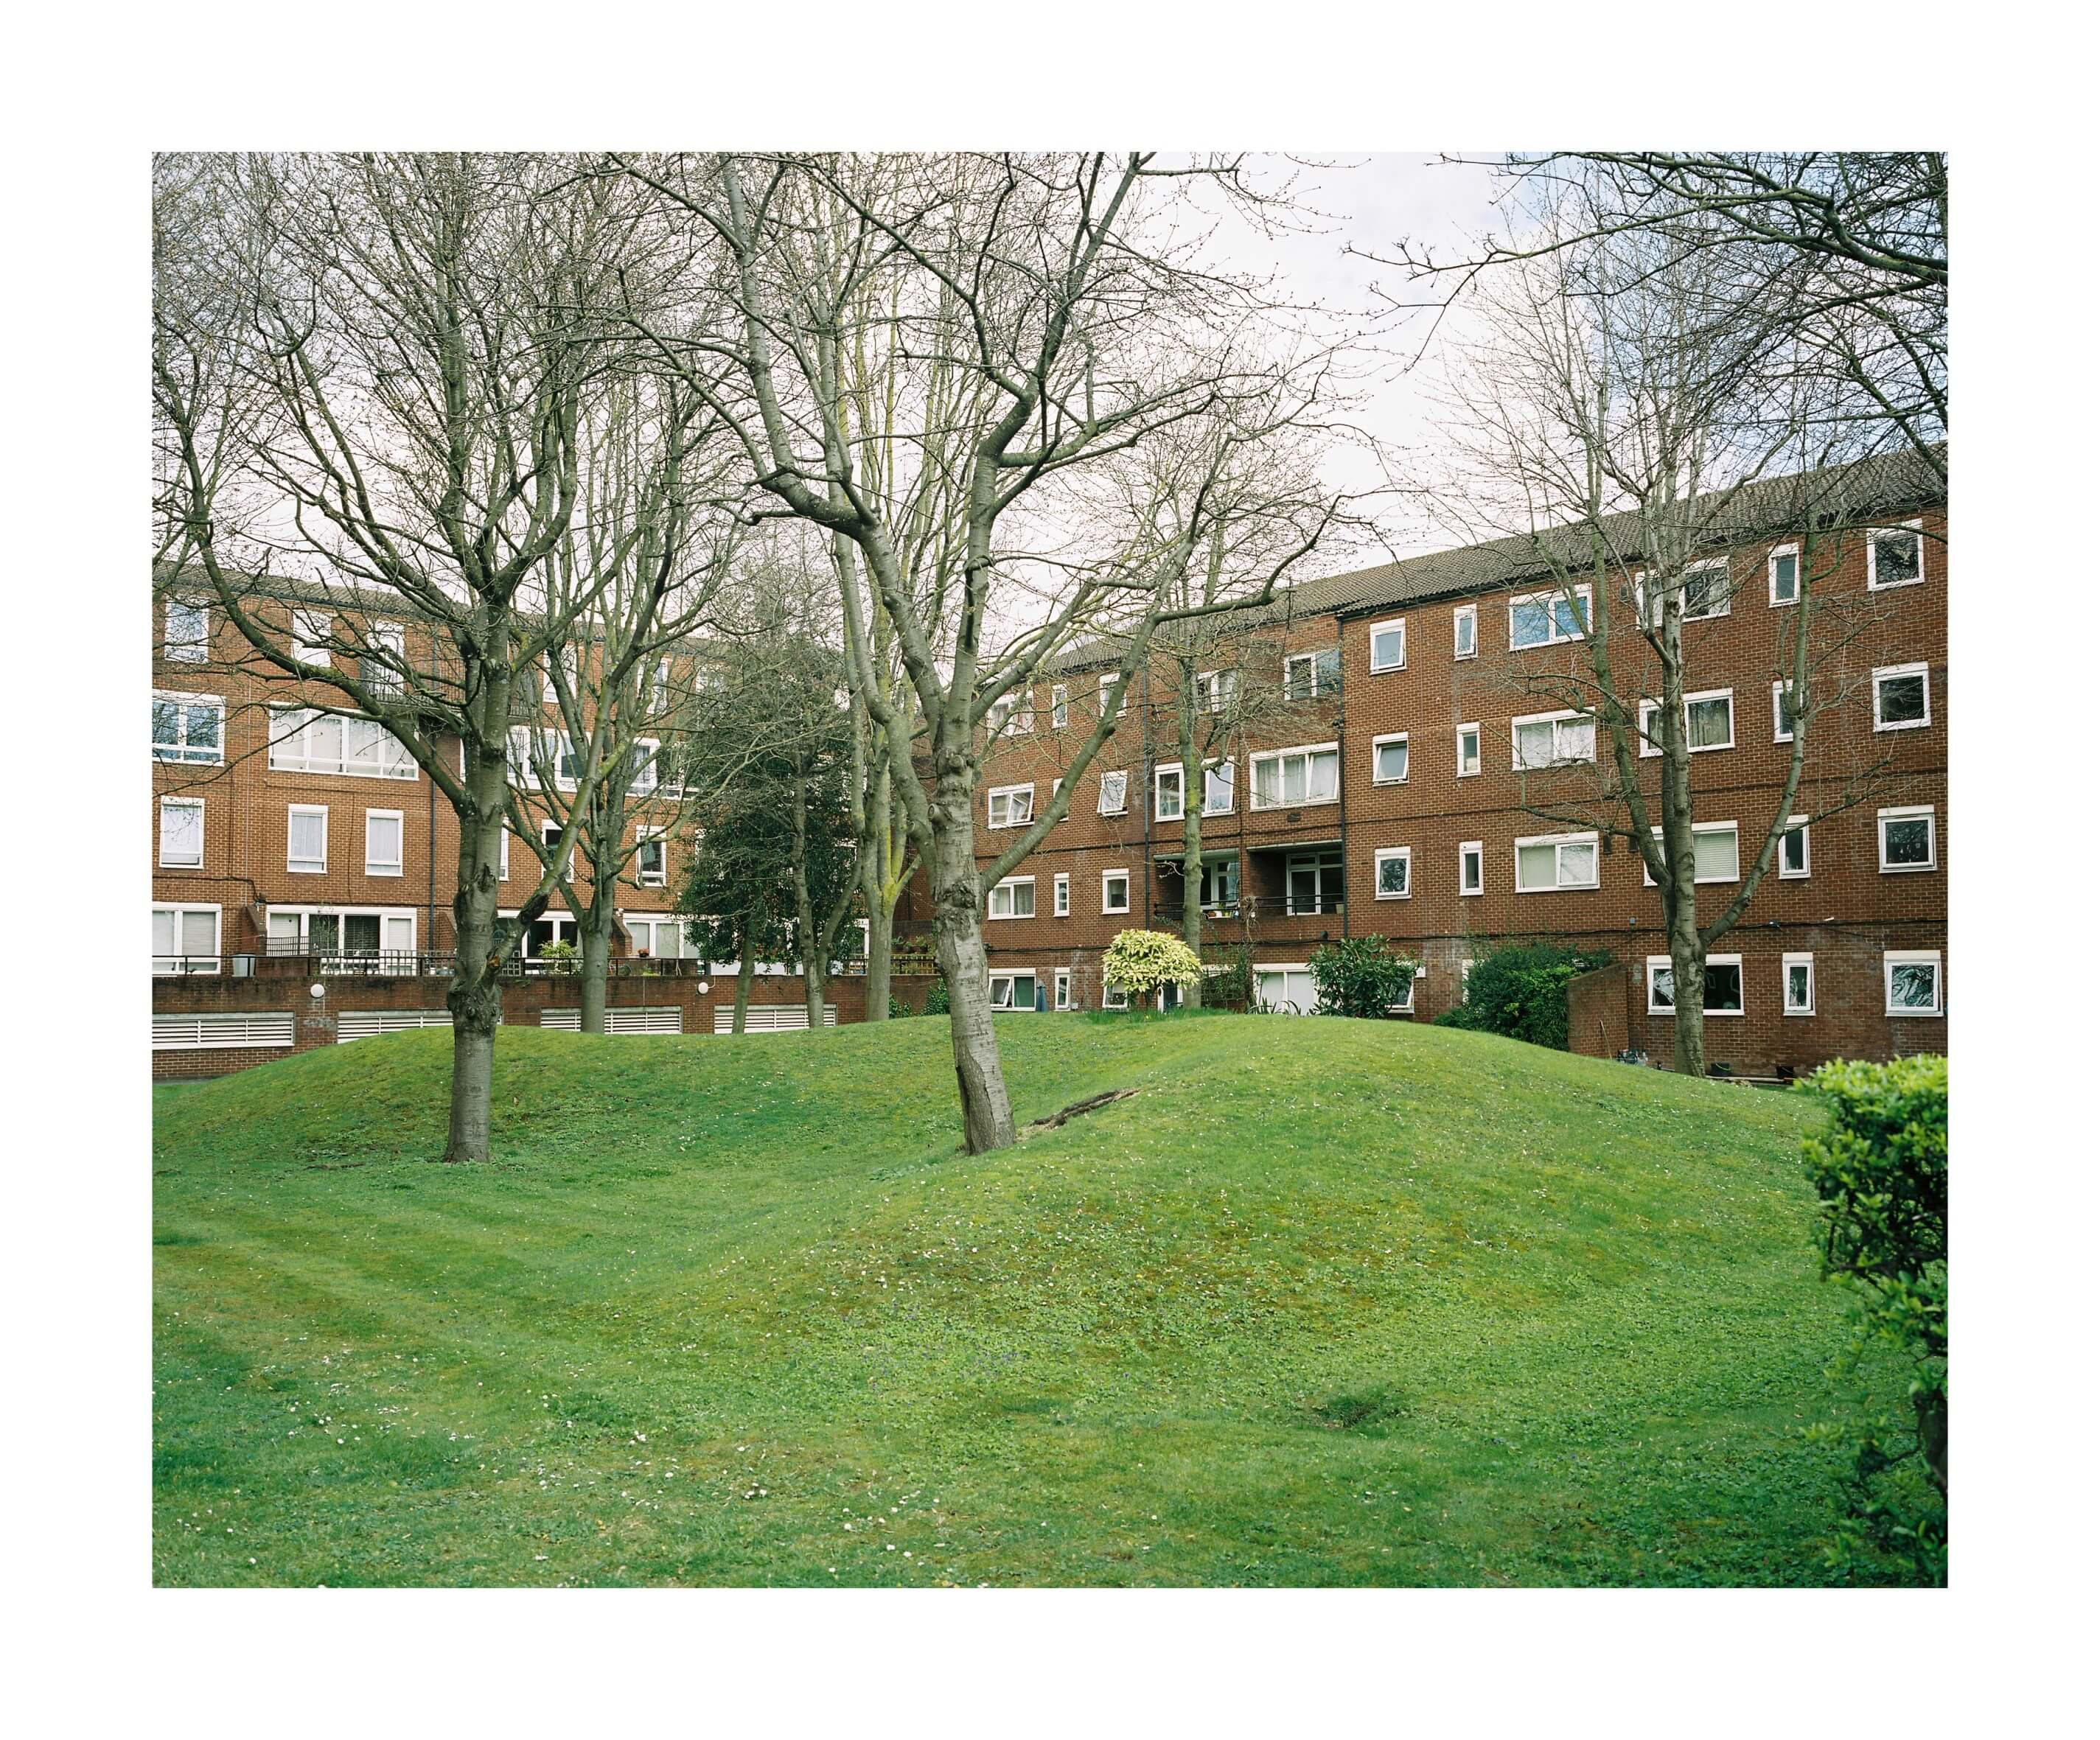 The South West Collective of photography Archie wells the scene of another stabbing in London, brick buildings and green grass